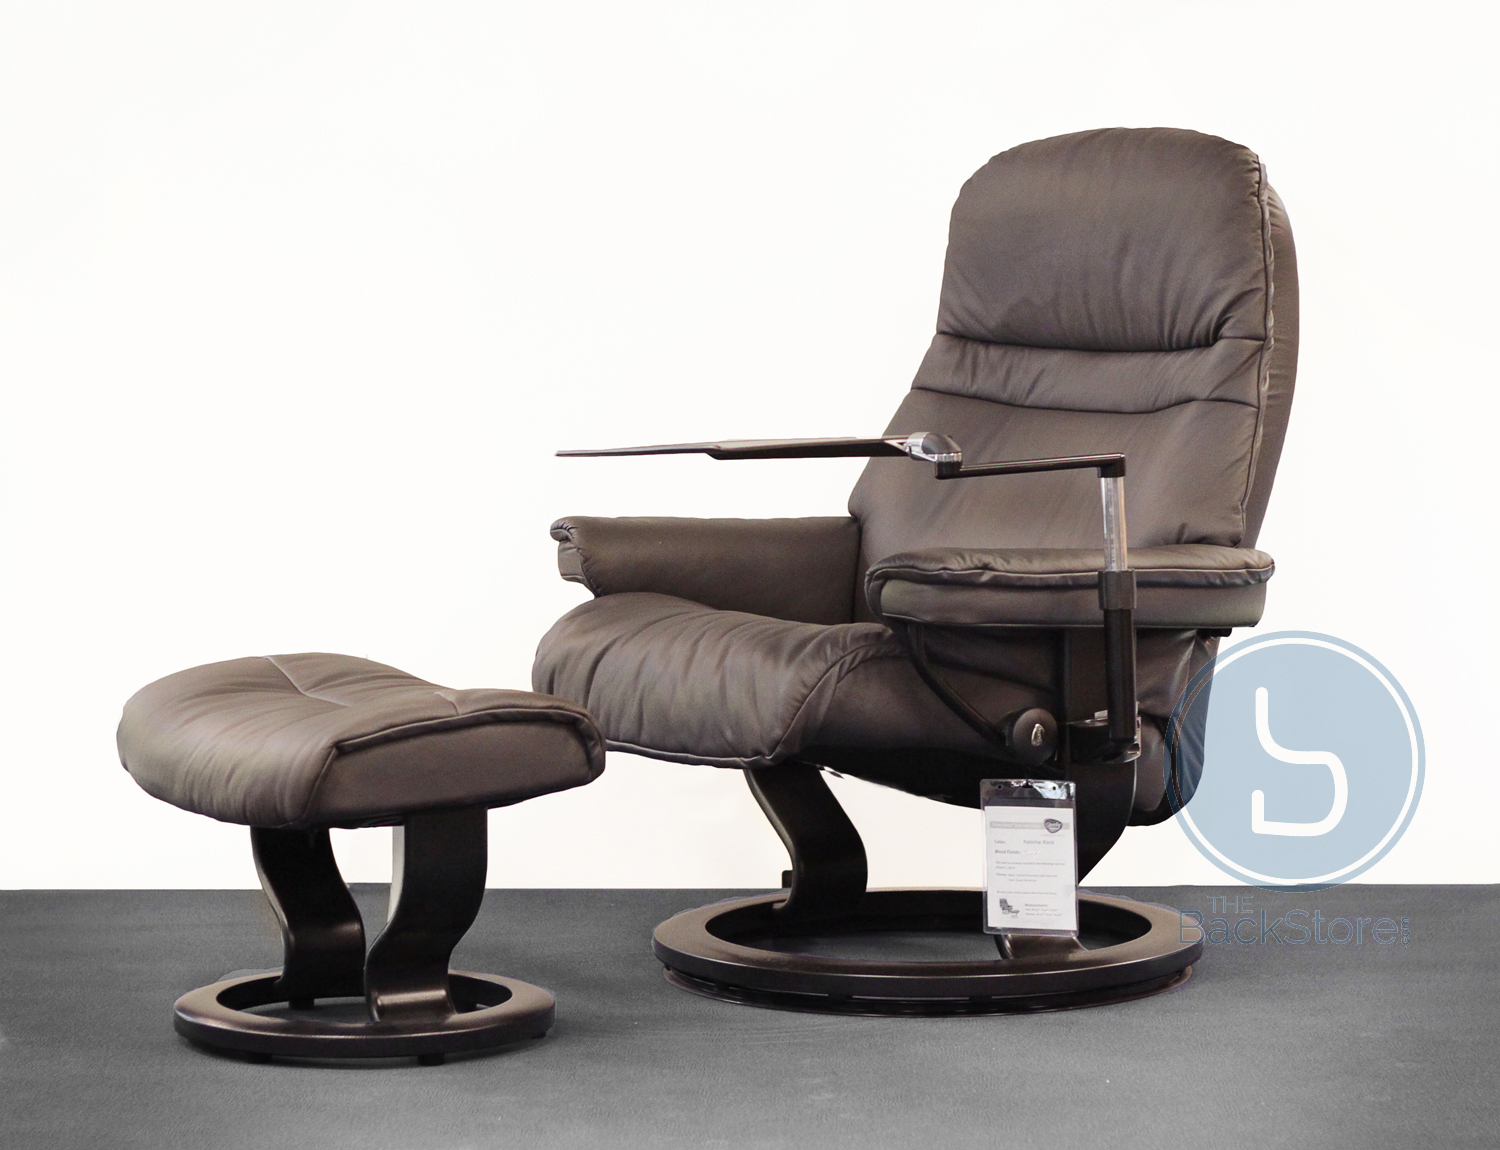 Stressless-world.com Stressless Sunrise Paloma Rock Leather Recliner Chair By Ekornes